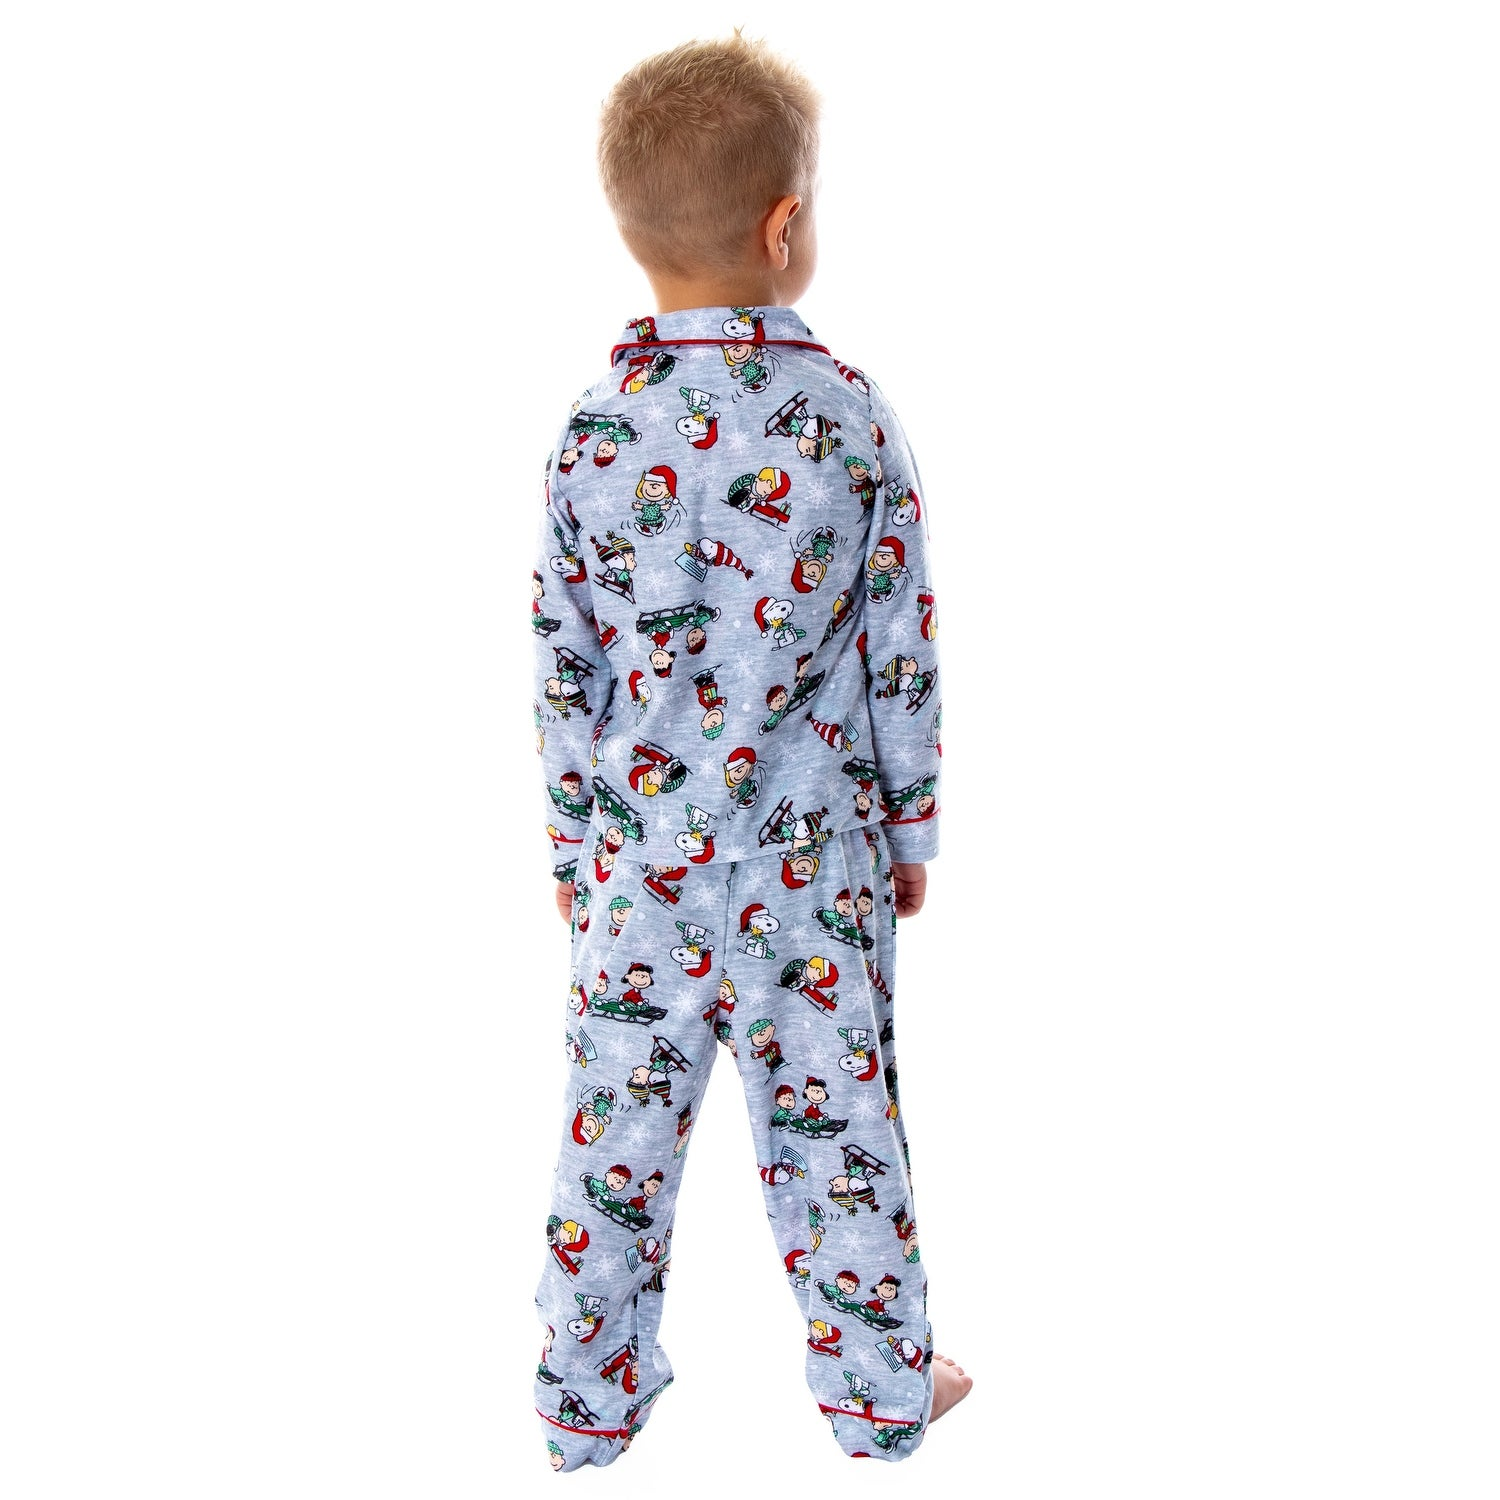 Peanuts Boys Snoopy /& Woodstock 2-Piece Pants Set Outfit